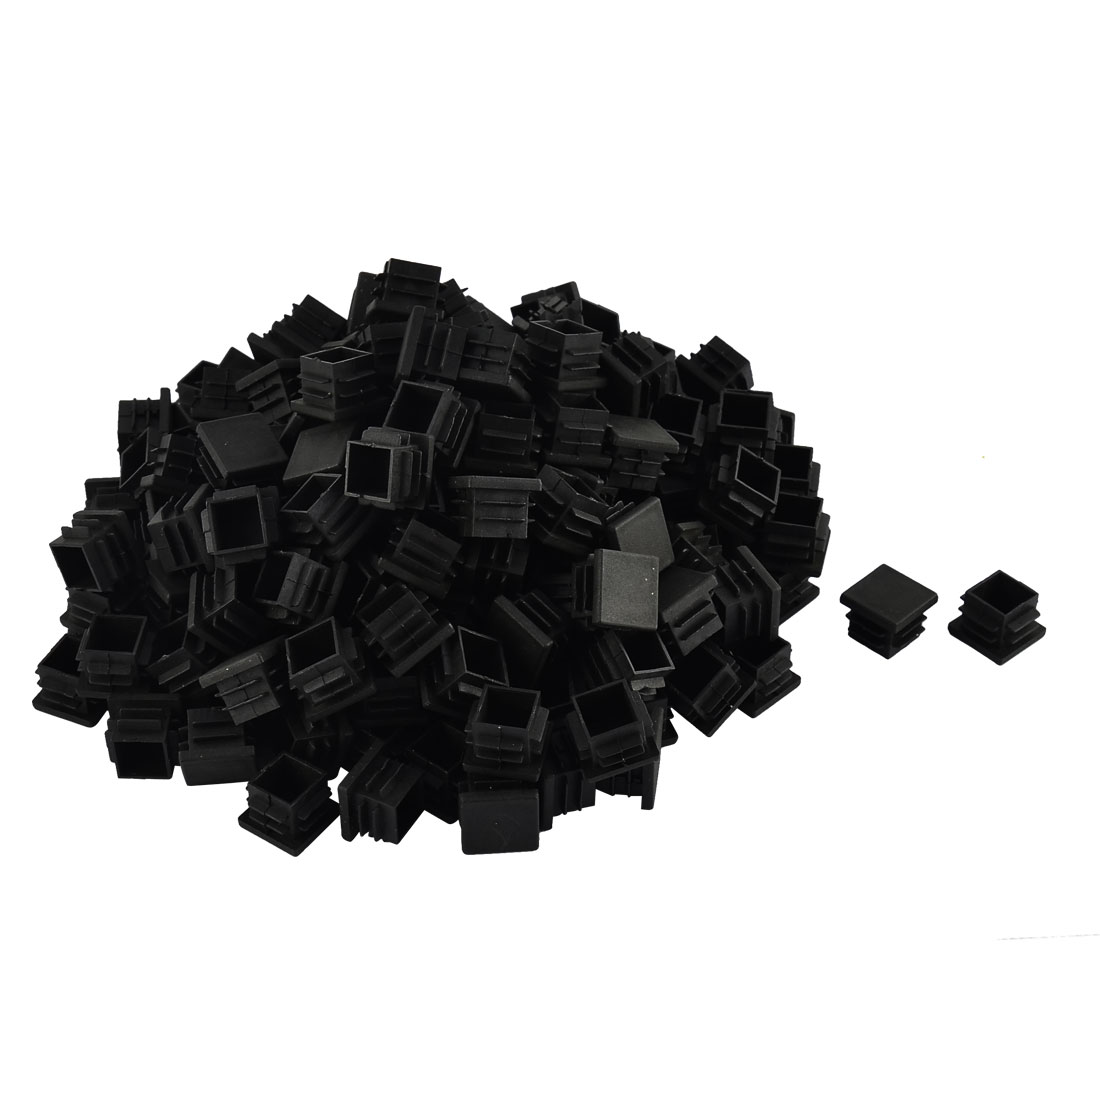 Furniture Table Chair Legs Plastic Square Tube Pipe Insert Cap Cover Black 19 x 19mm 200pcs